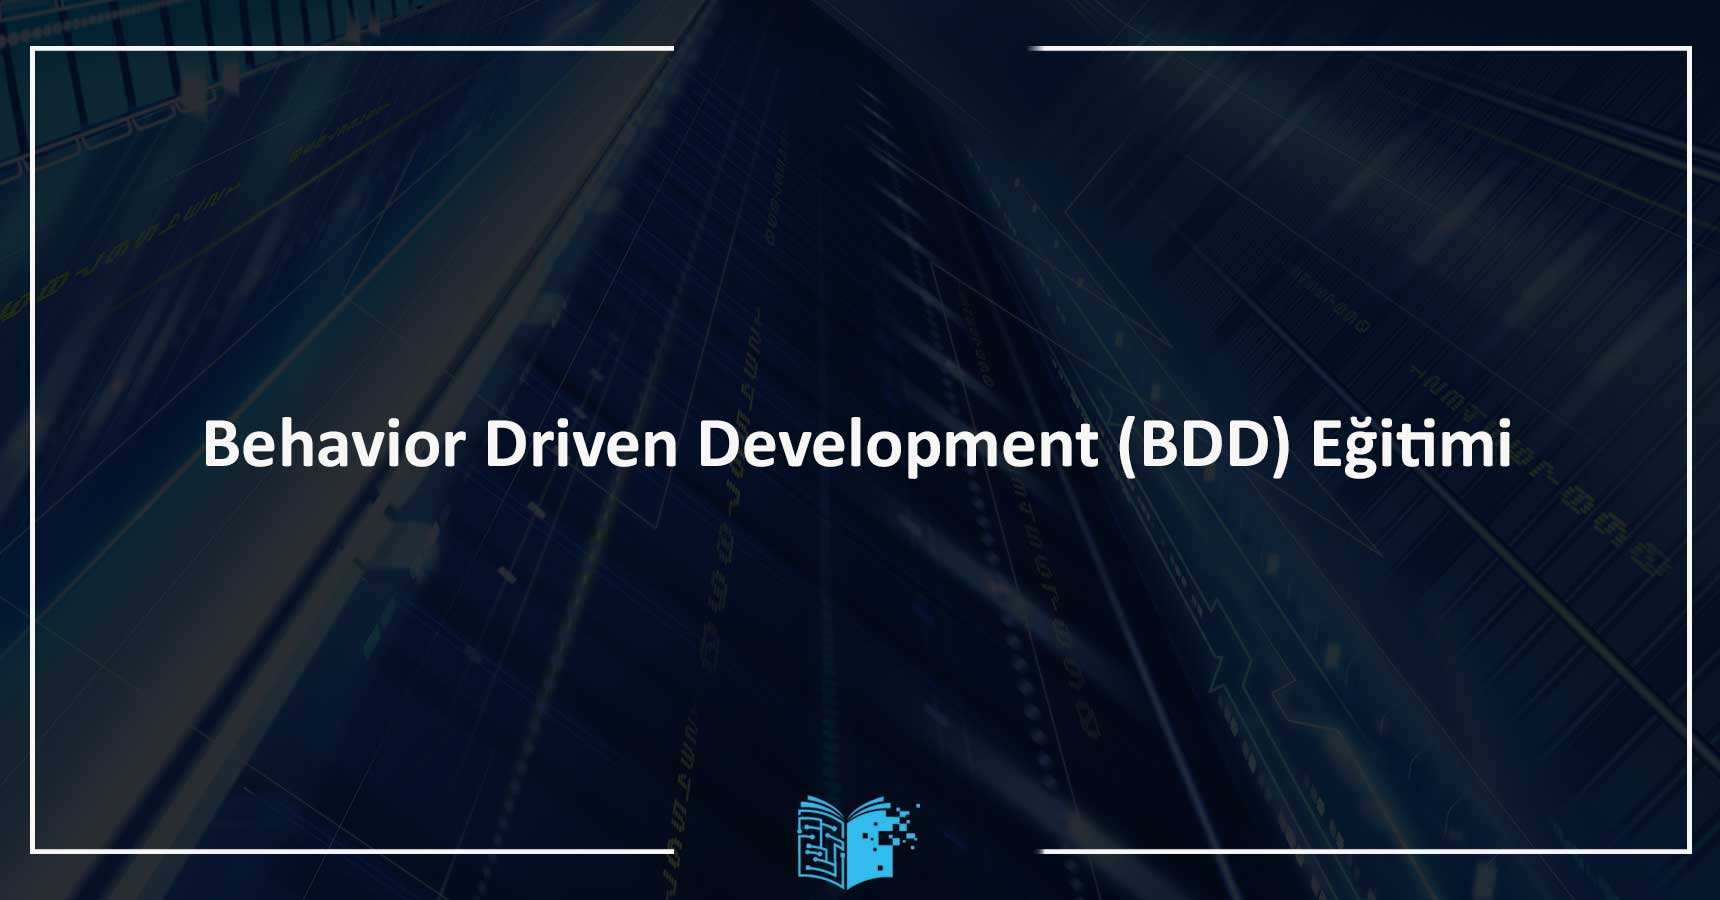 Behavior Driven Development (BDD) Eğitimi